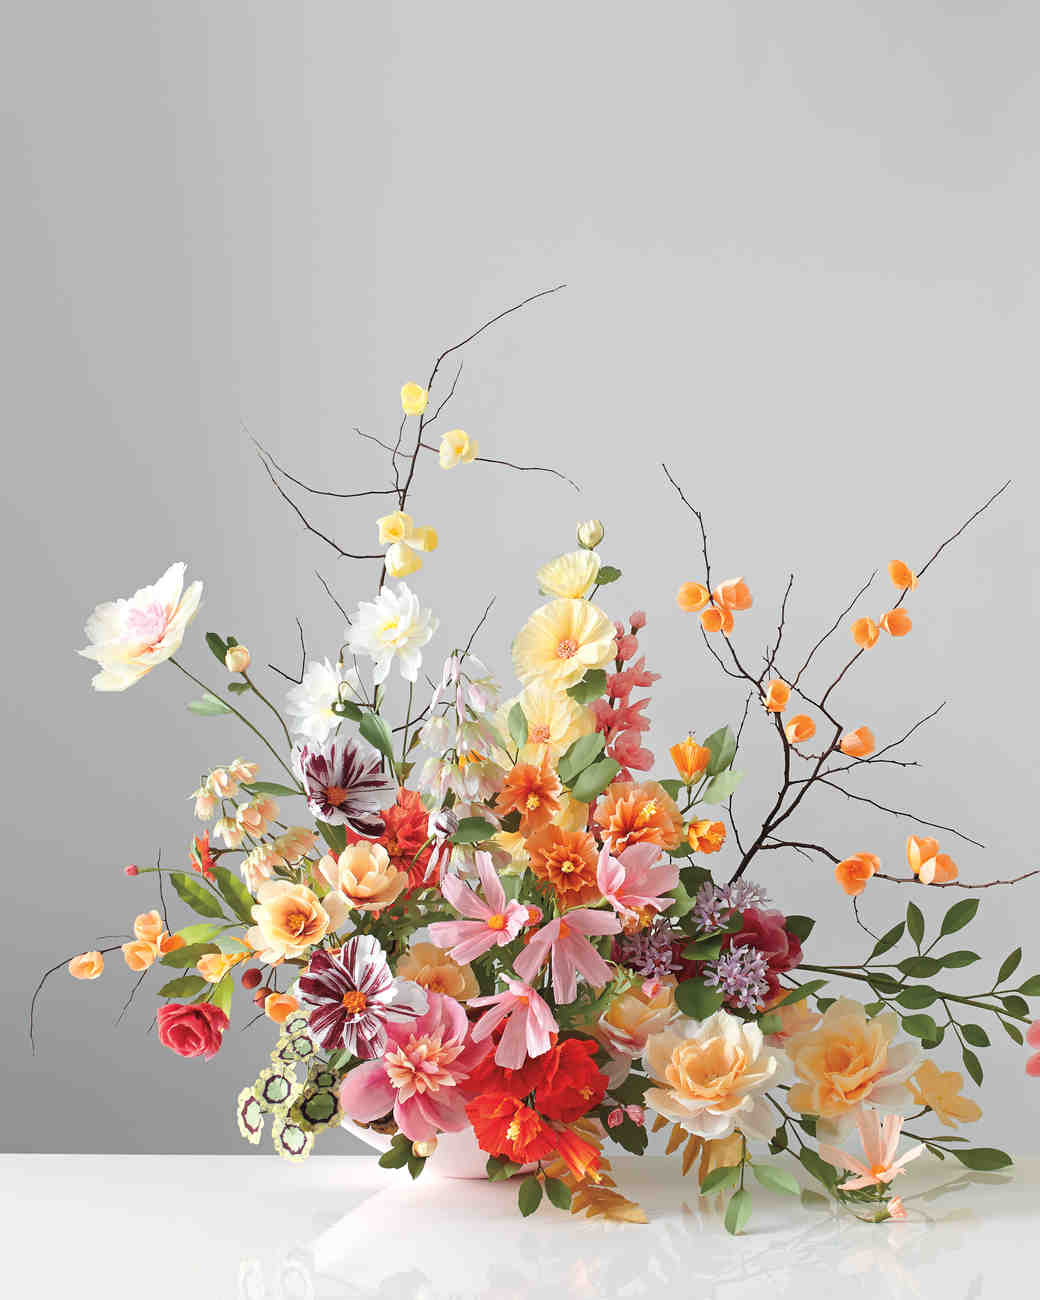 large-arrangement-paper-flowers-034-d111062.jpg